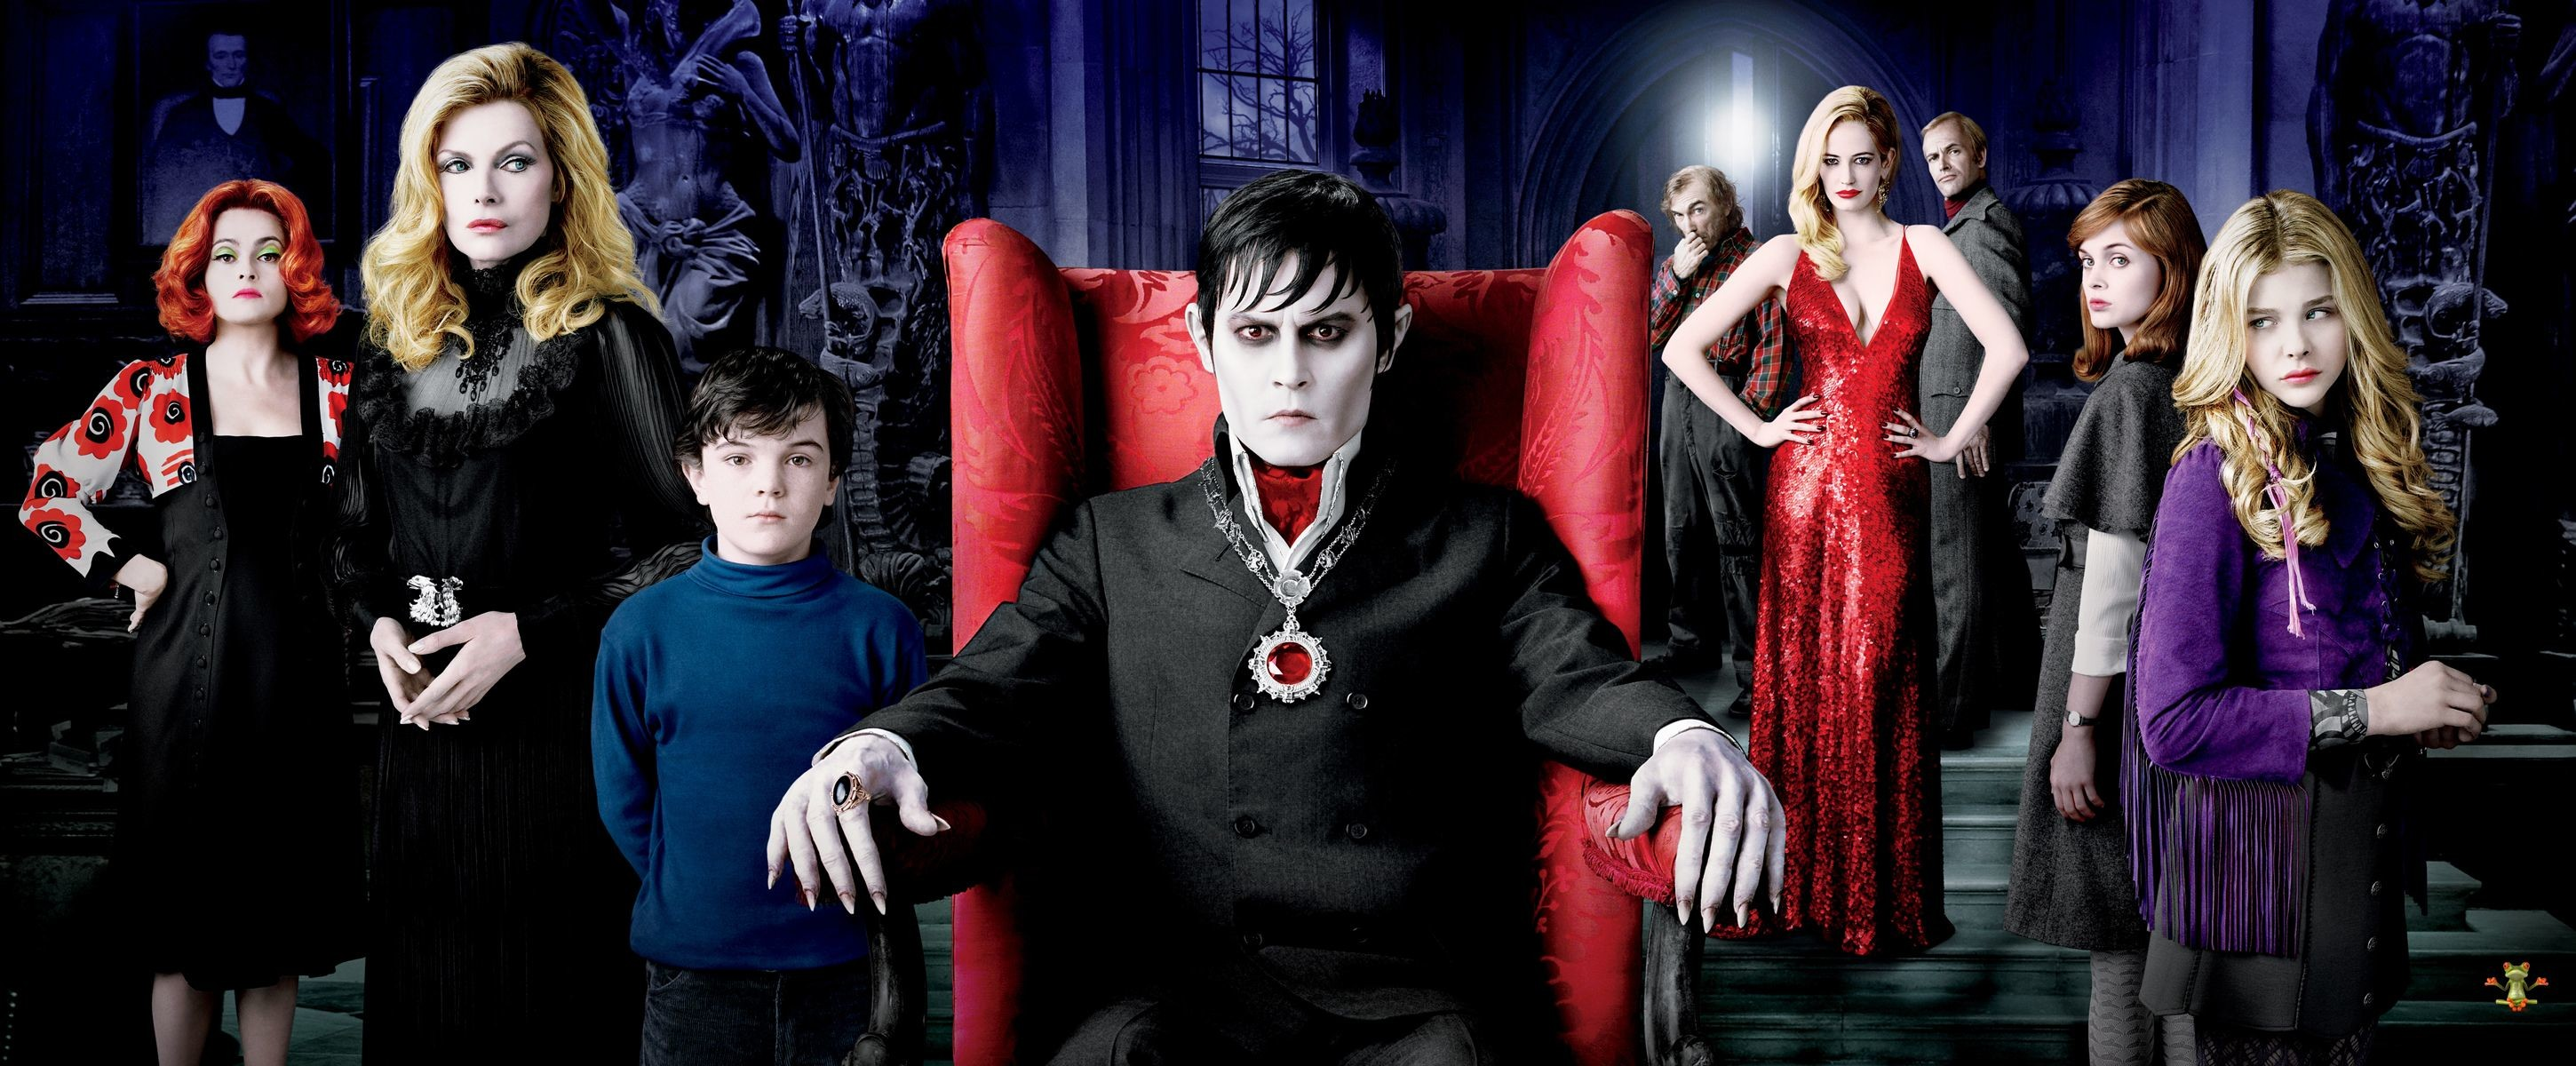 2900x1200 Dark Shadows Wallpapers 2 - 2900 X 1200 | stmed.net